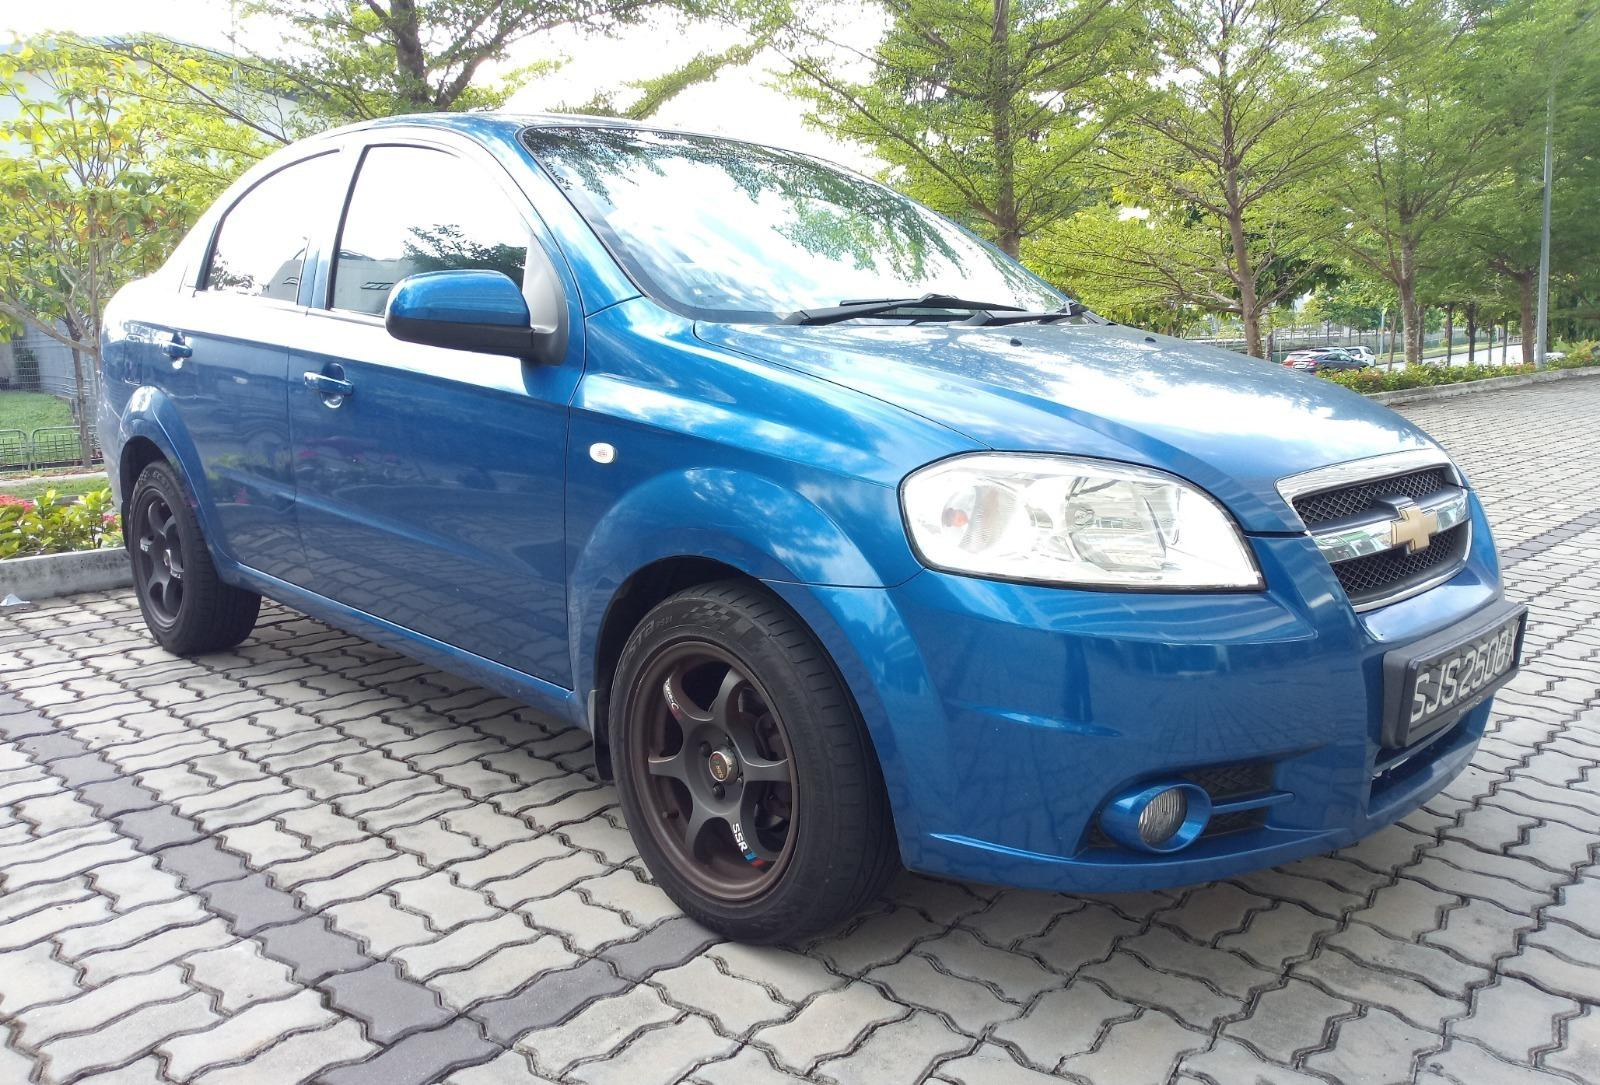 Chevrolet Aveo 1.4A Fuel Efficient & Best Rate In The Market!!!